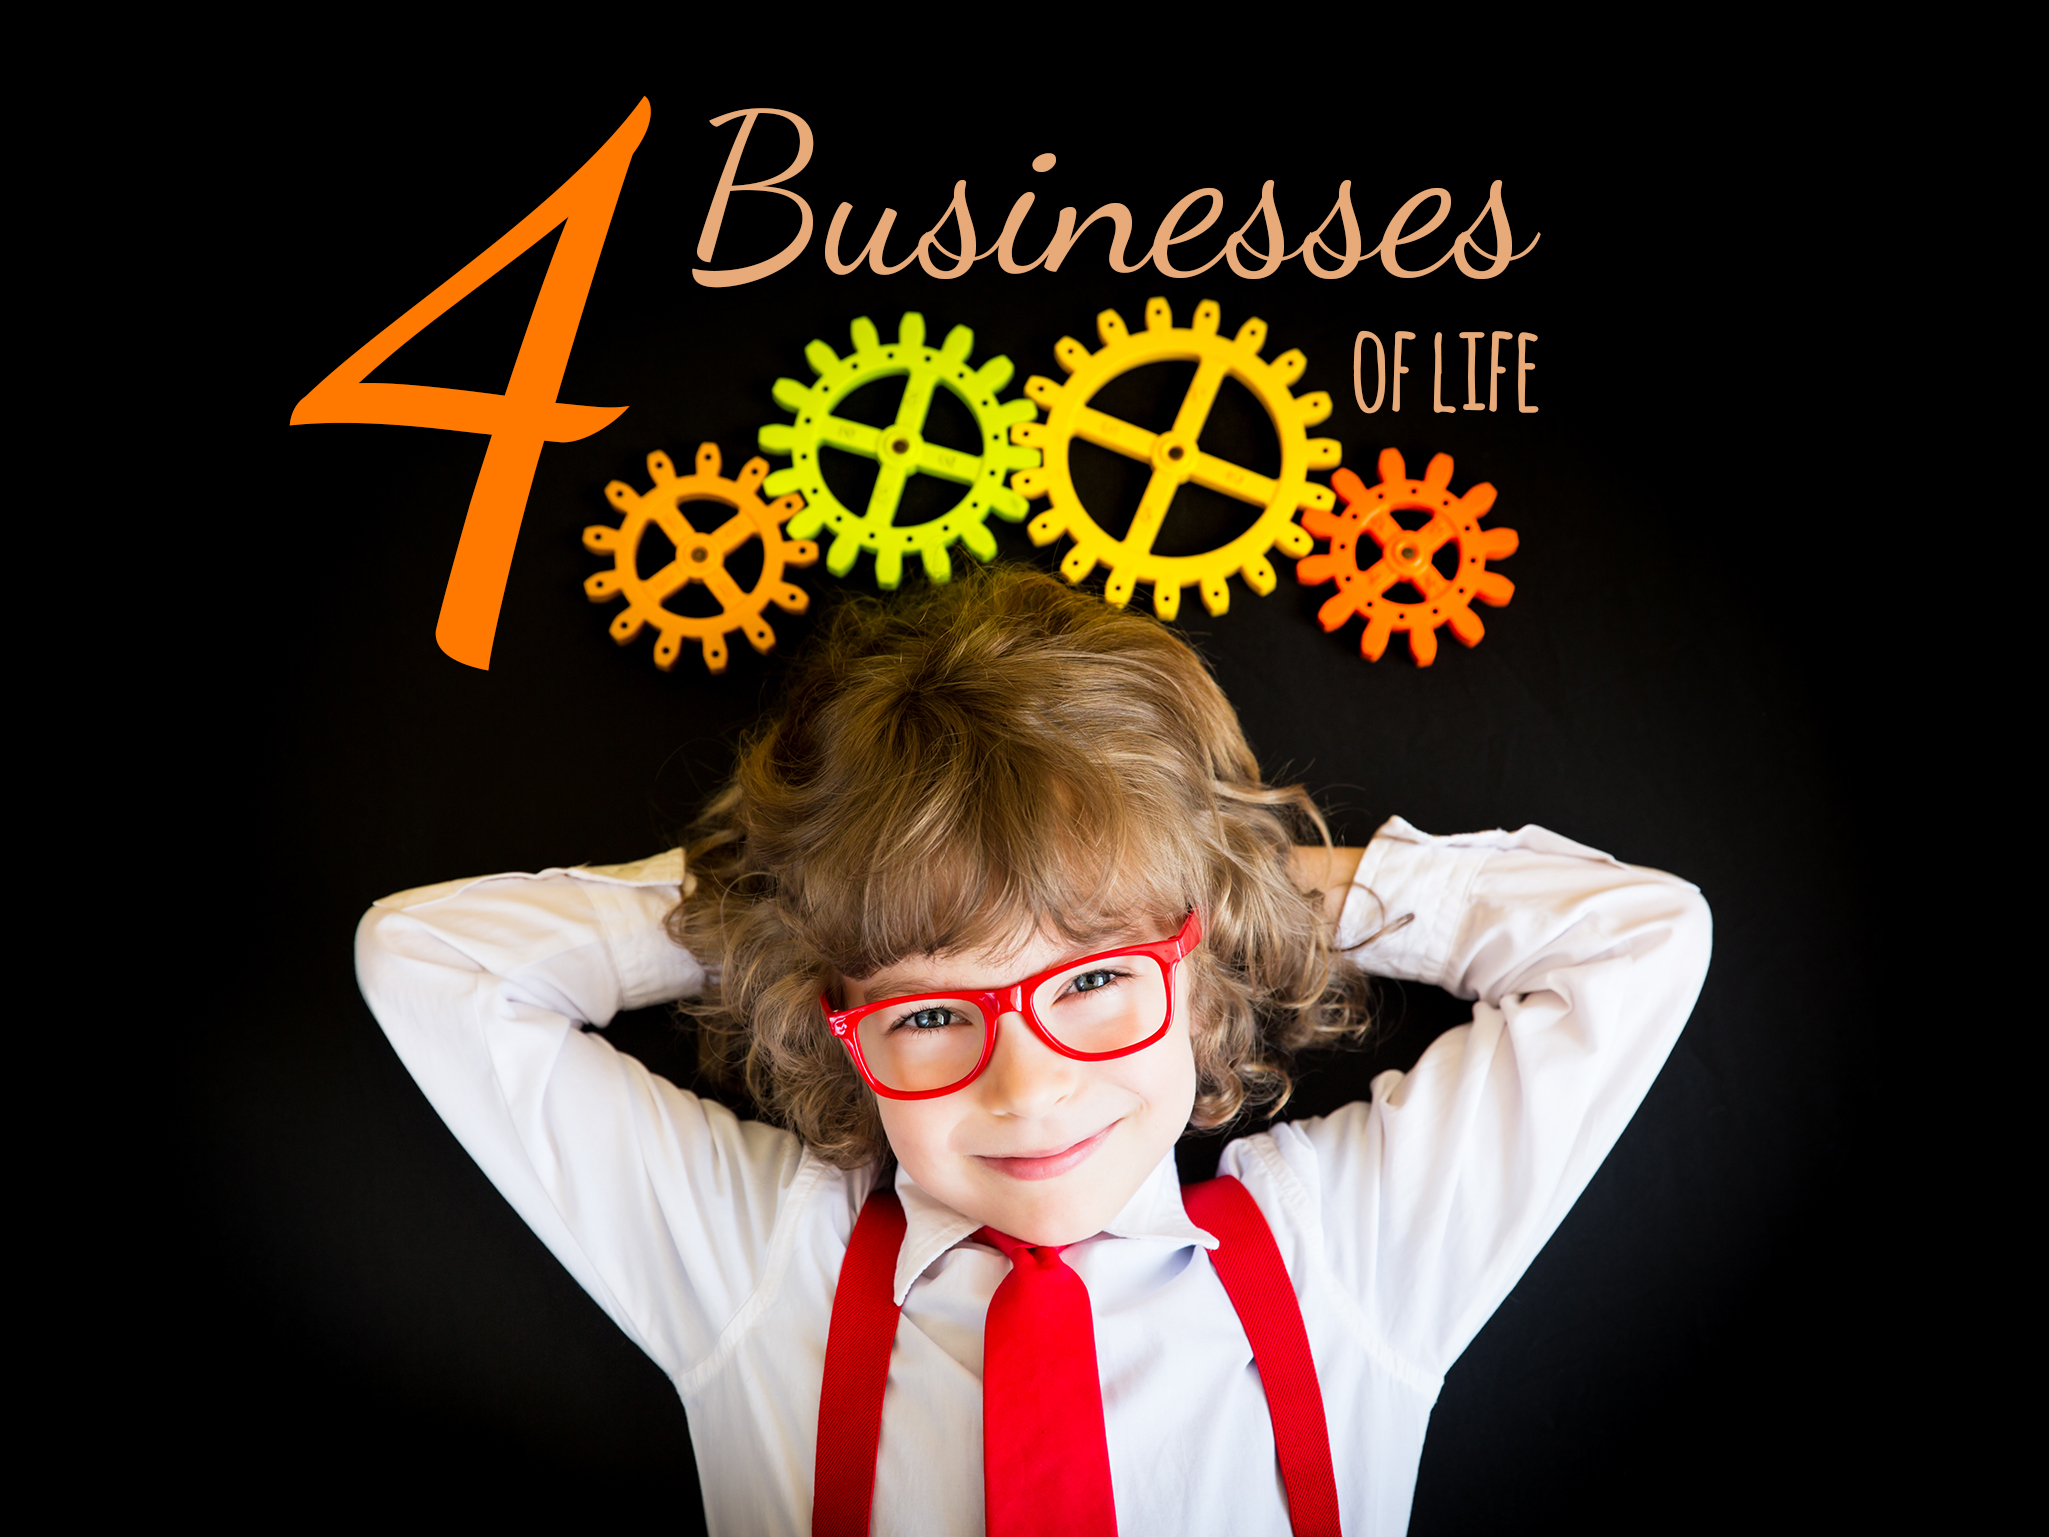 You have 4 businesses in life!